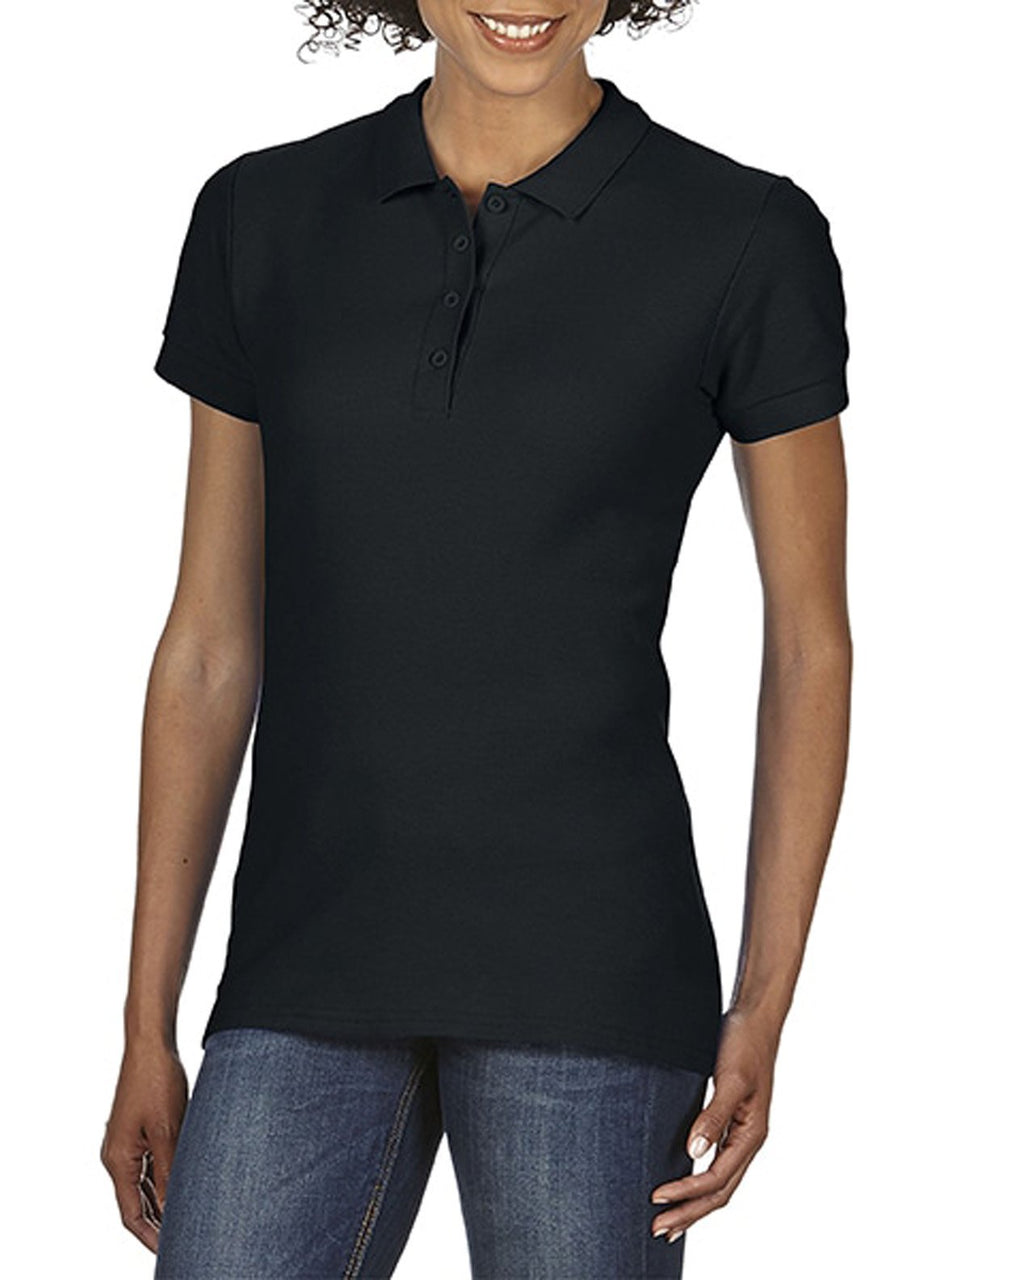 Gildan Softstyle Ladies Double Pique Polo (64800L)